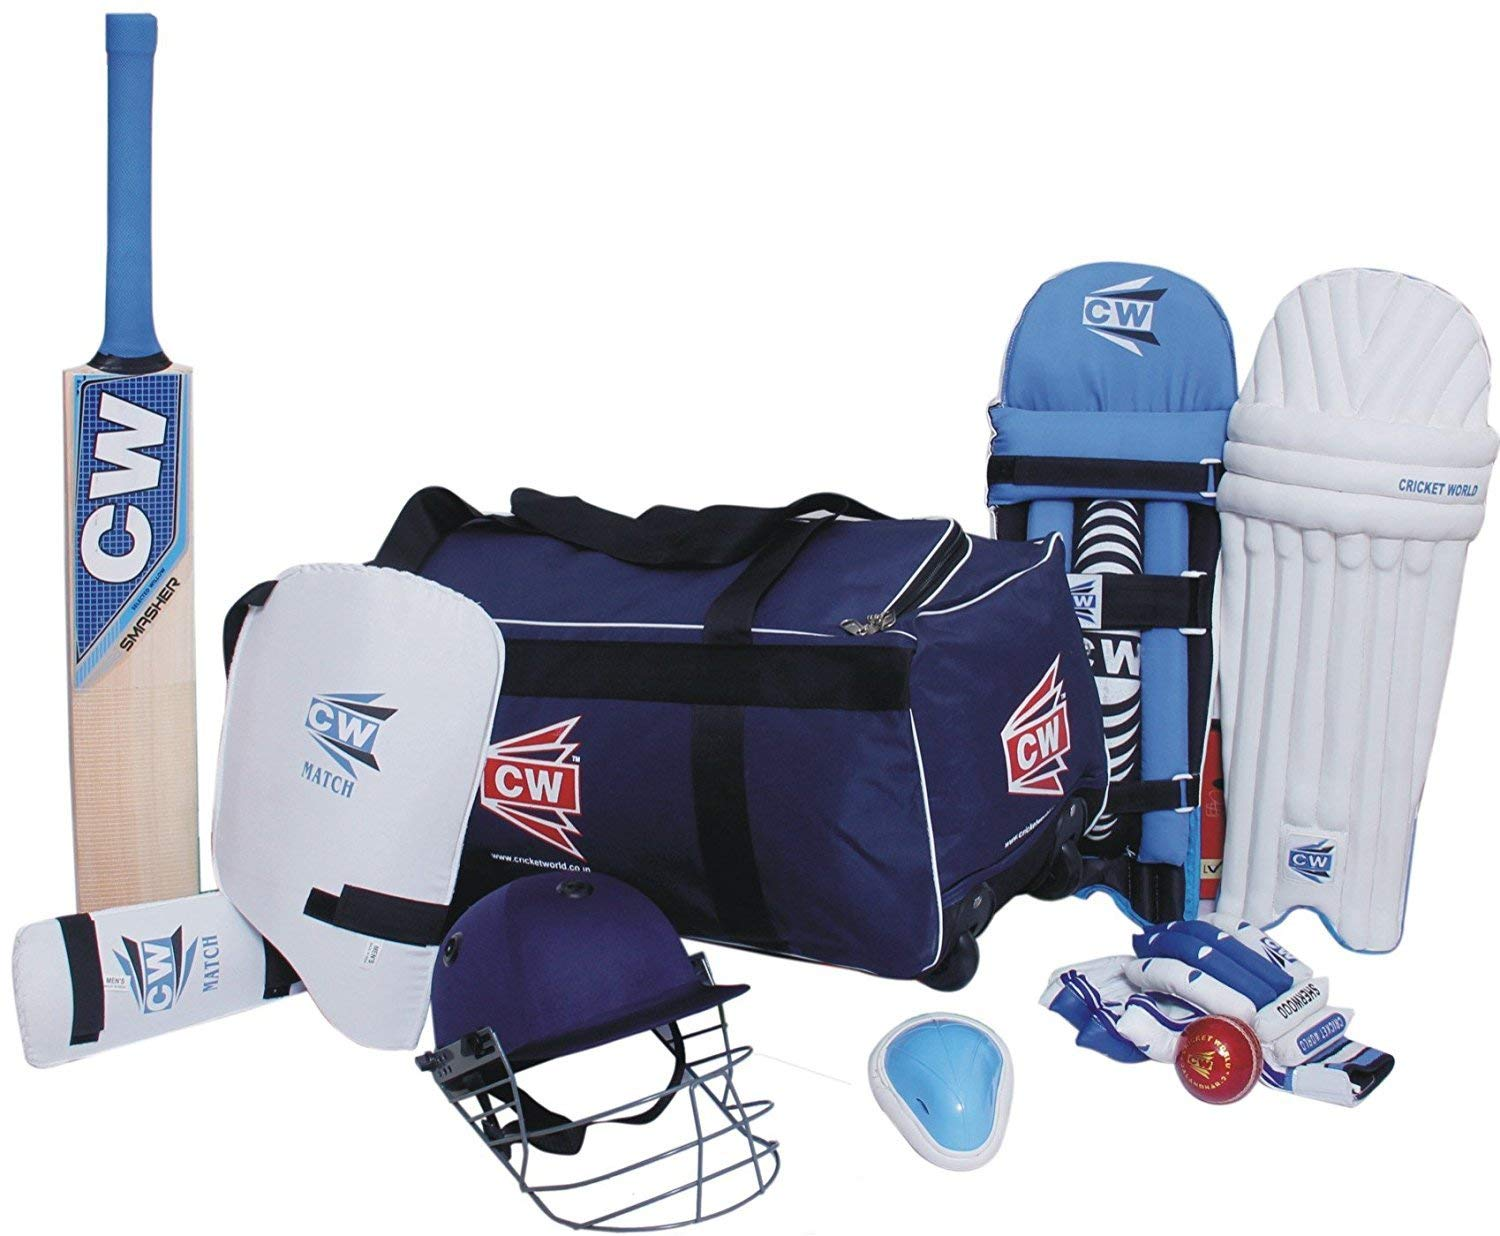 C&W Junior Academy Complete Cricket Gears Kit 9 Item Set Size 3 Made In India Engineered For Small Boys School Match Tournament Pack In Blue Color For 5-6 Yr Age Group Small Boy/Kids By